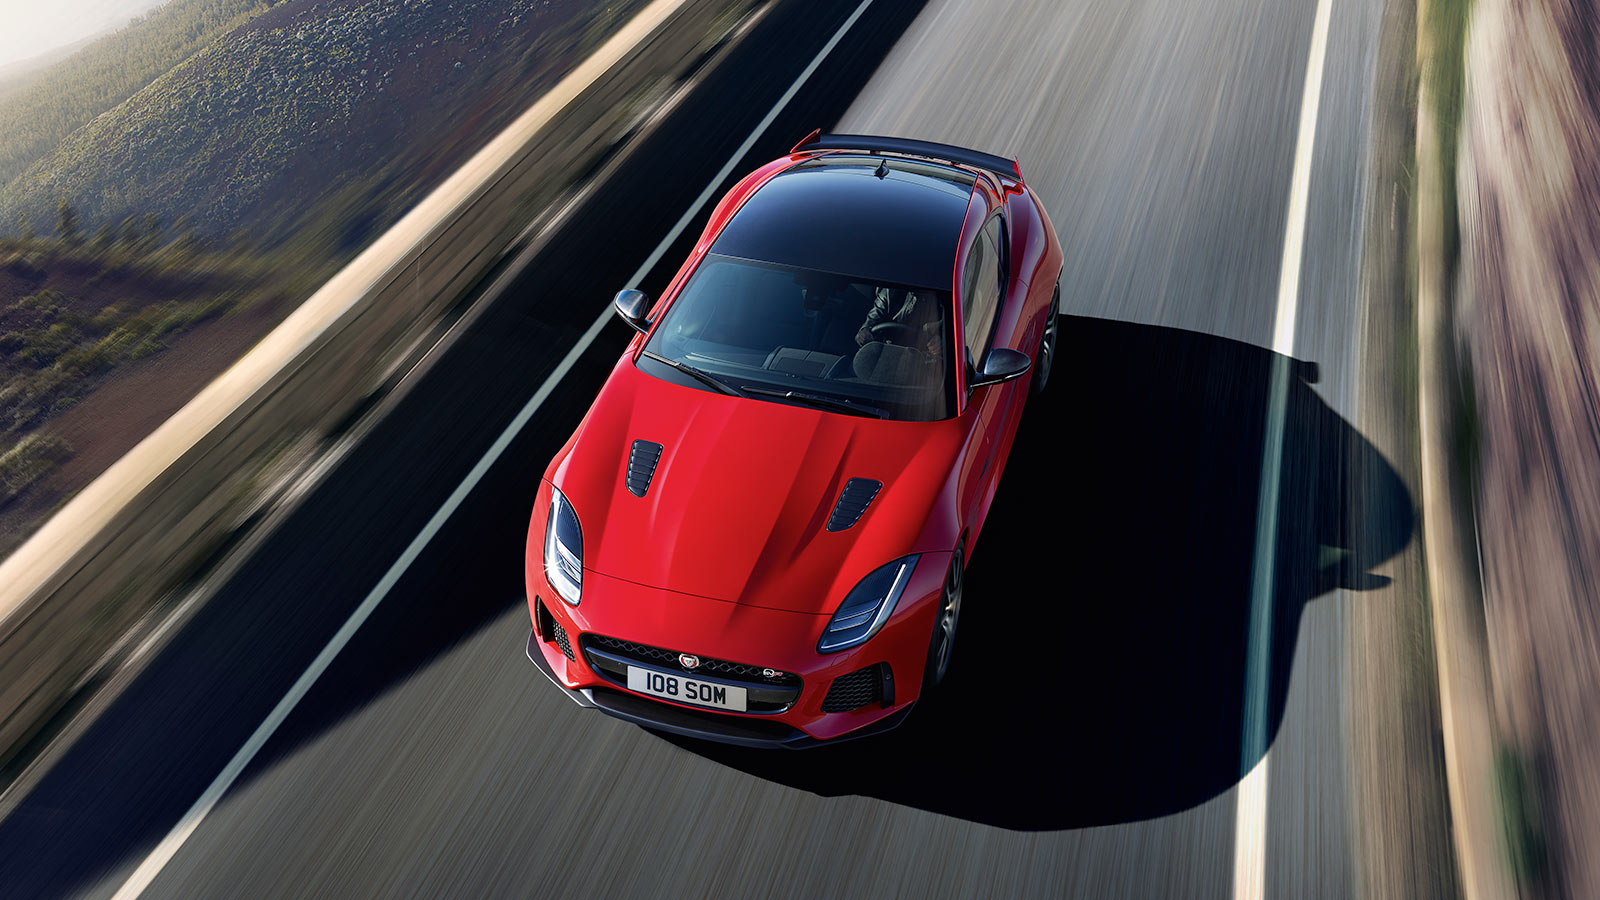 Jaguar F-TYPE 3.0 (380) S/C V6 Chequered Flag AWD SPECIAL EDITIONS image 7